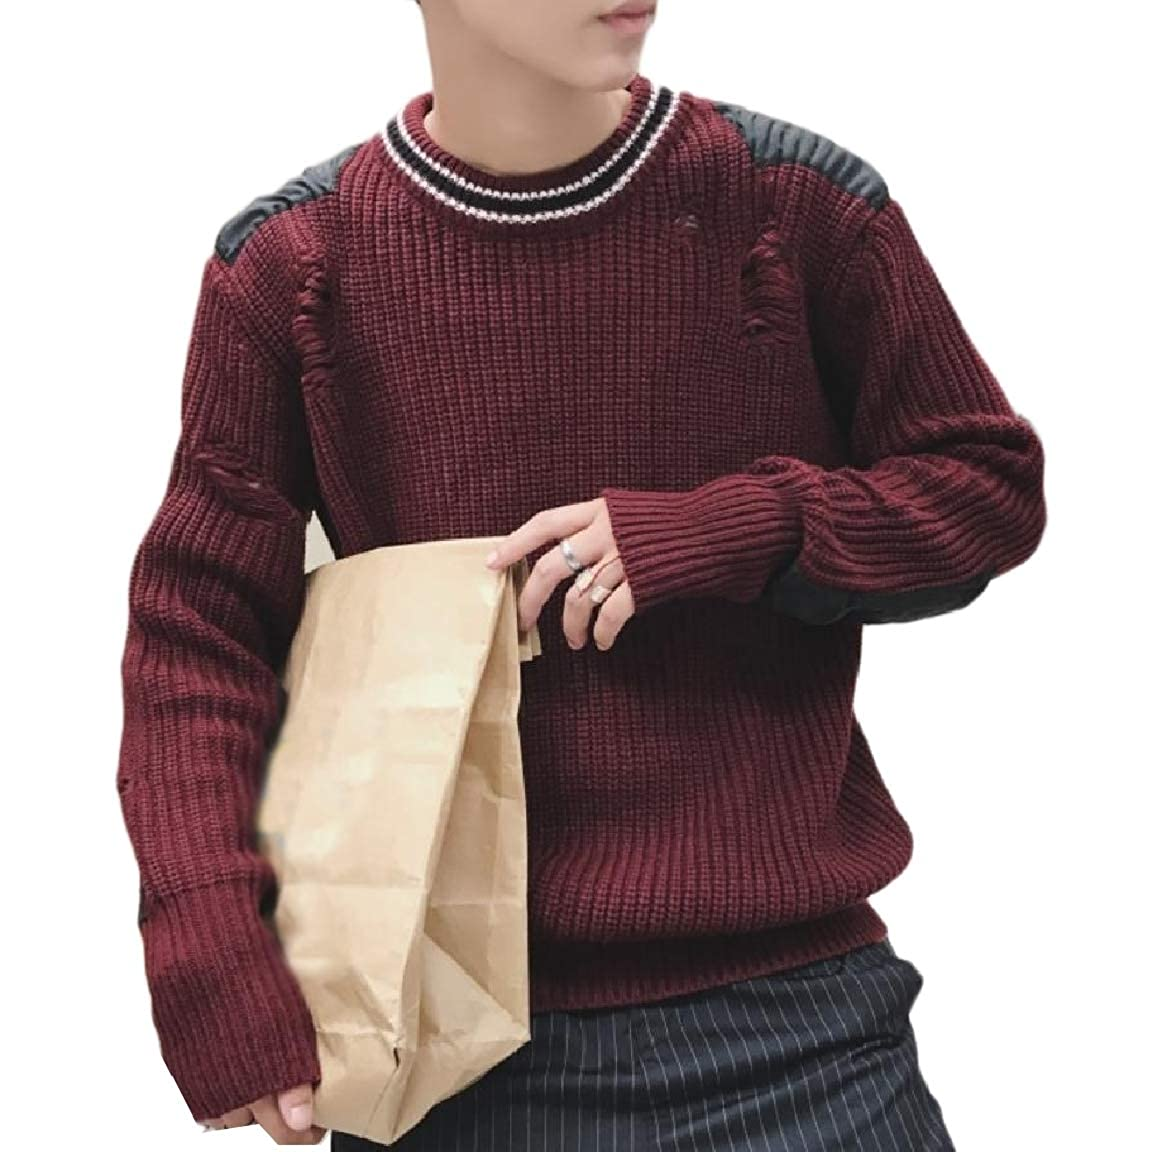 YUNY Mens Fashion Ribbed Loose Knitwear Wool Blend Sweater Blouse Wine Red XL